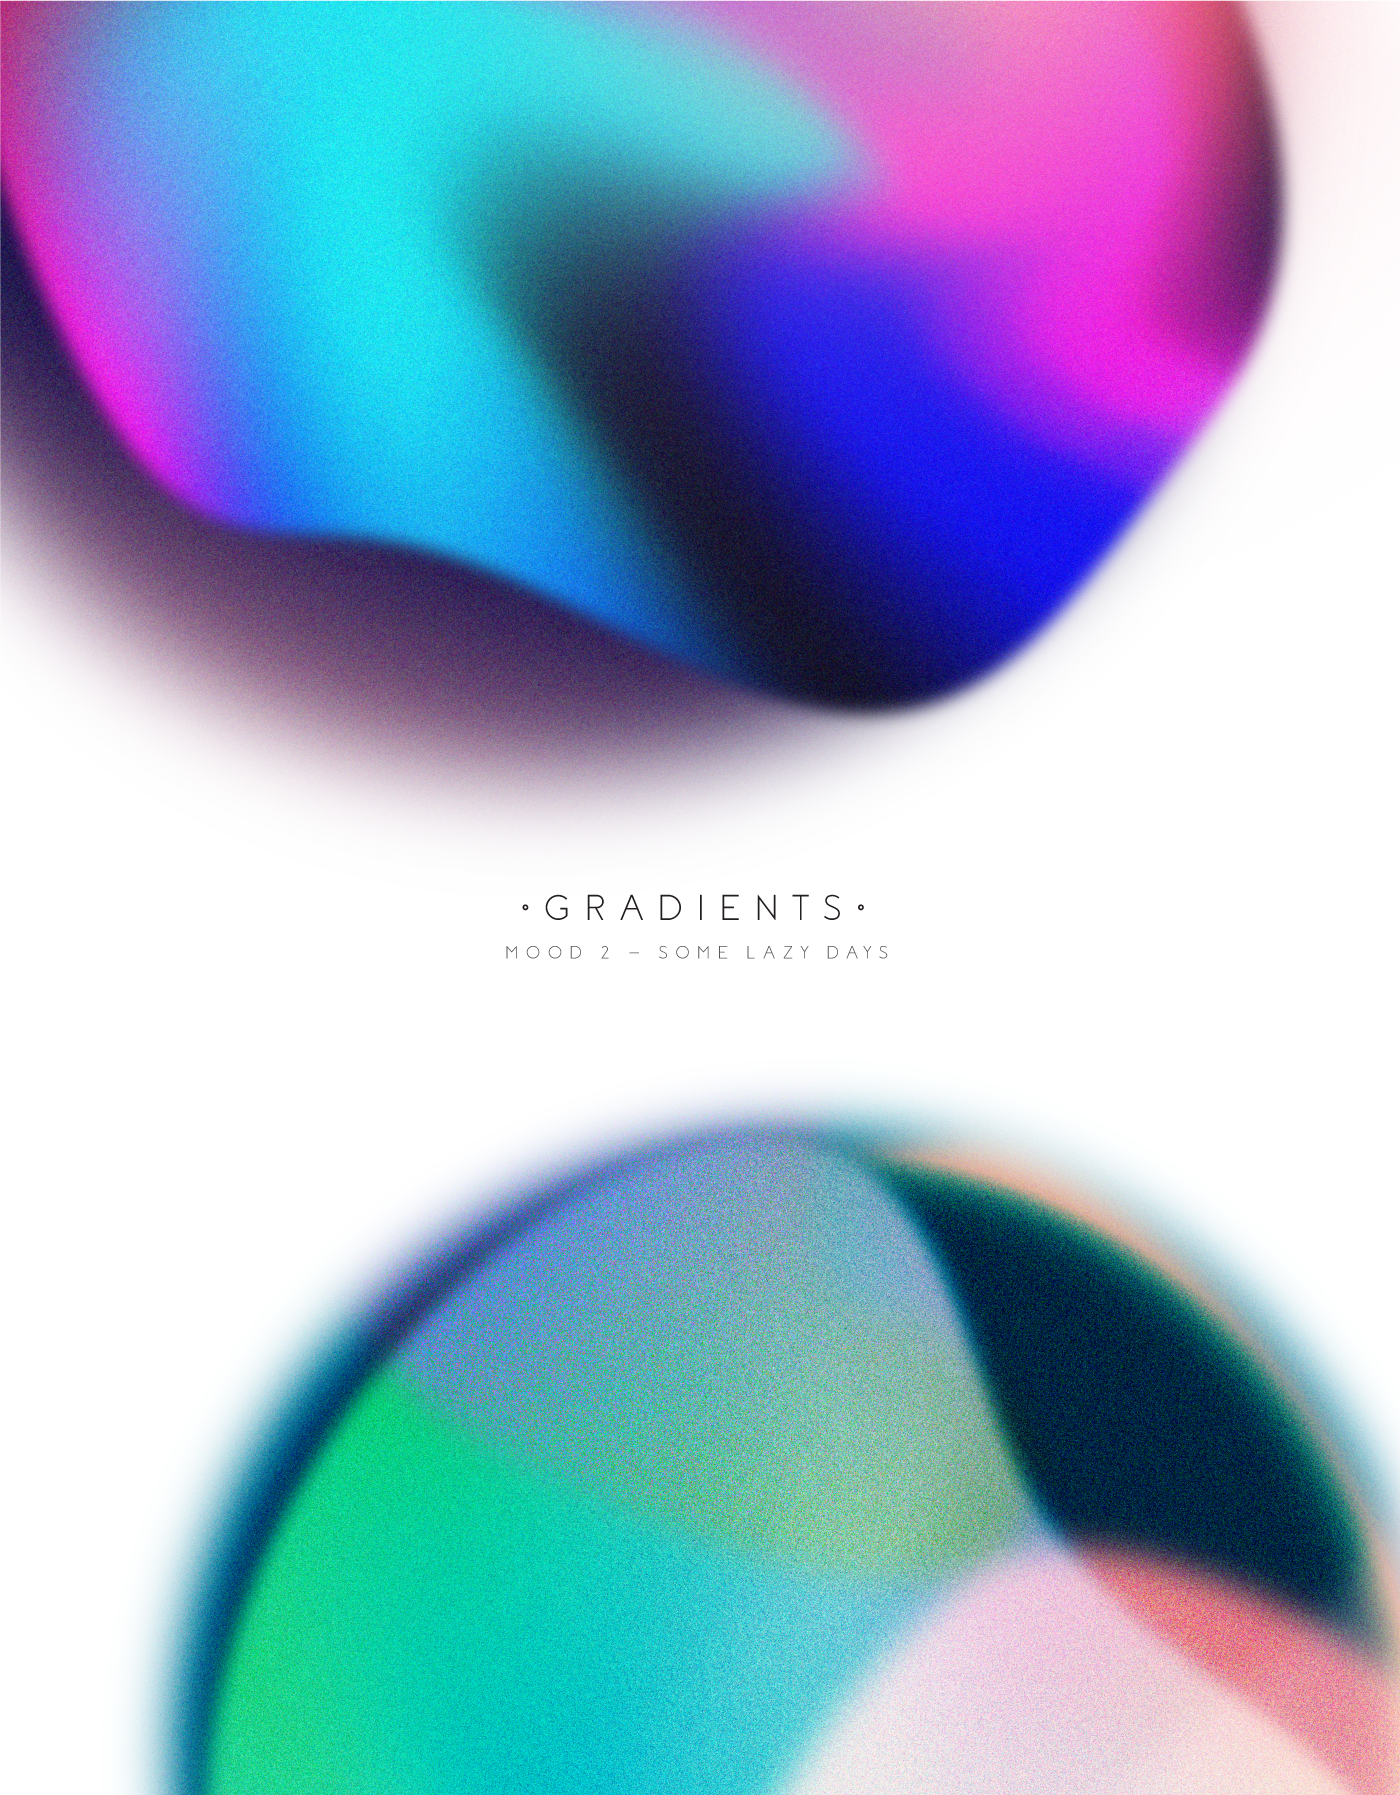 15 Inspiring Examples Of Vibrant Gradients In Graphic Design